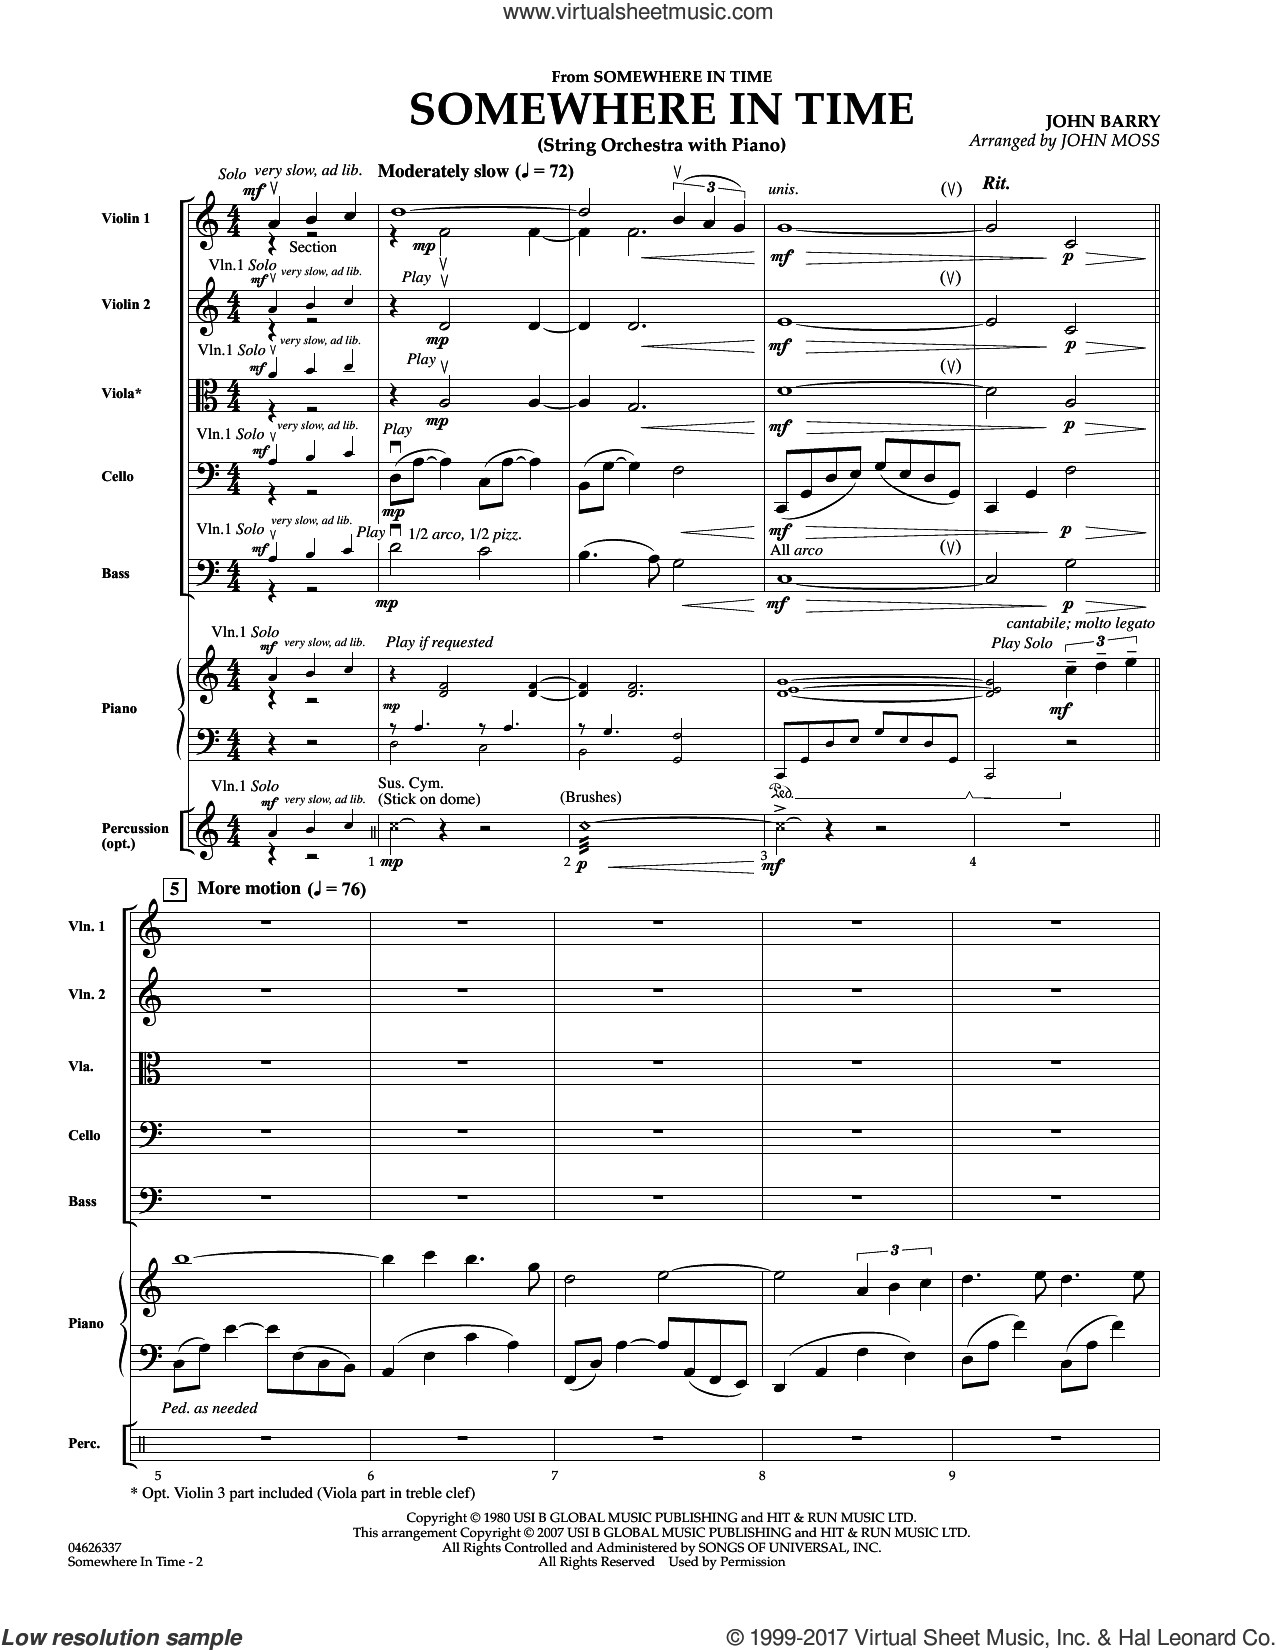 Somewhere in Time (COMPLETE) sheet music for orchestra by John Barry, B.A. Robertson and John Moss, intermediate